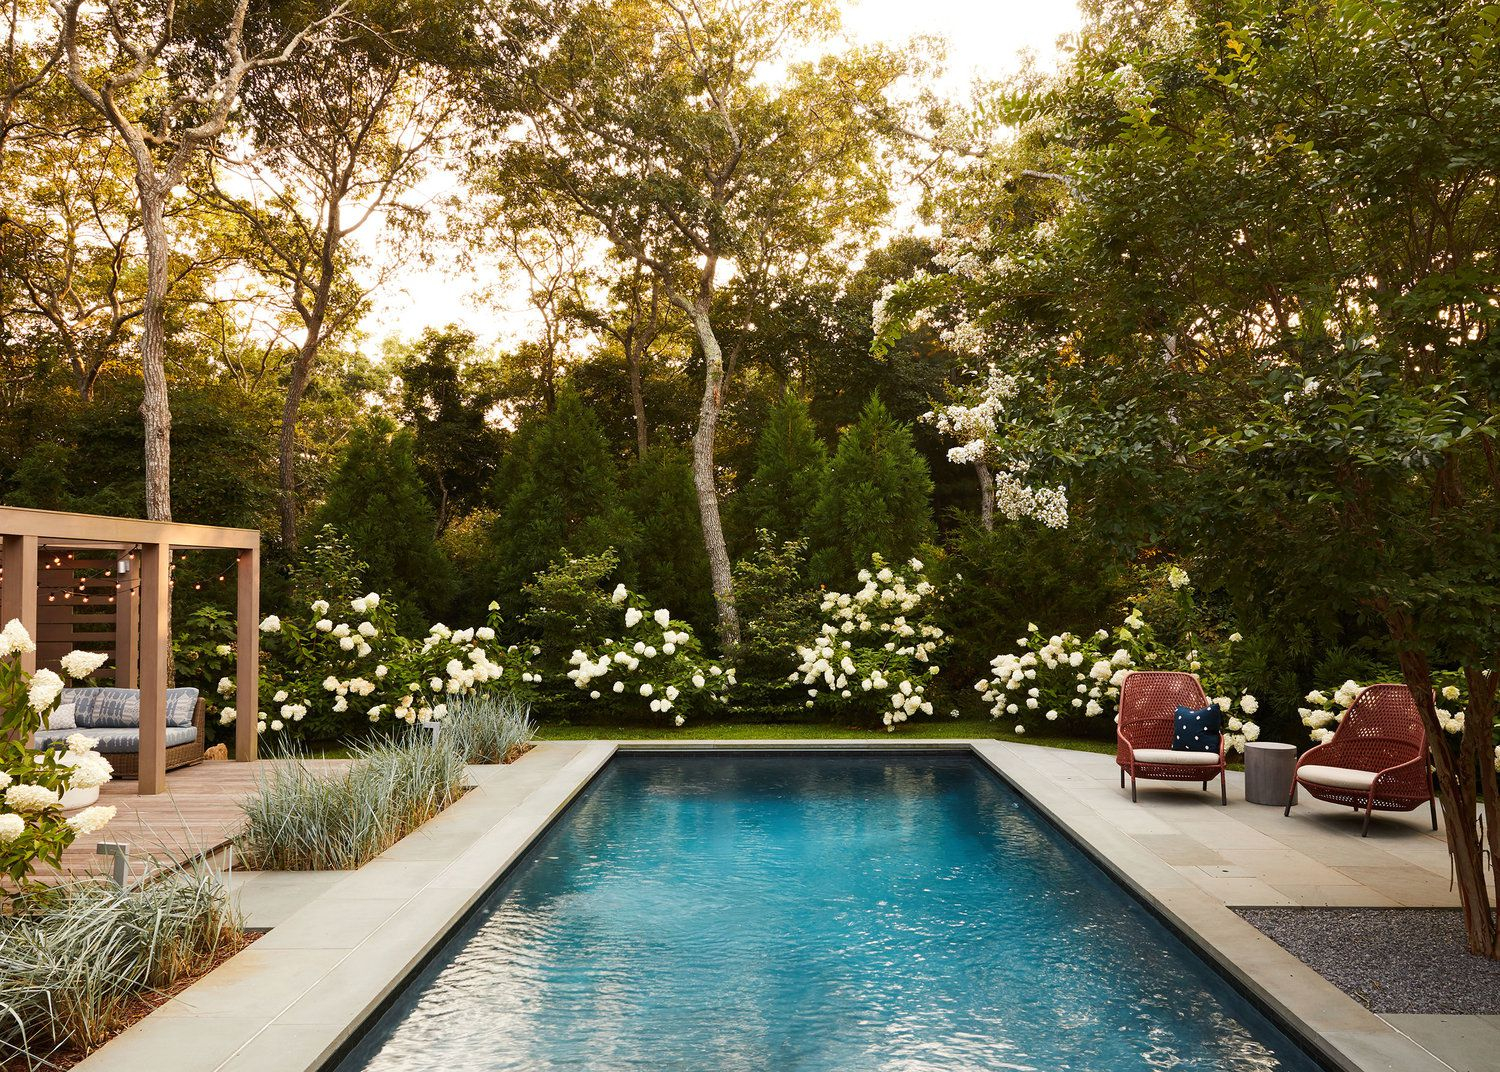 37 Breathtaking Backyard Ideas Outdoor Space Design Inspiration in 16 Awesome Concepts of How to Make Backyard Decorating Ideas Home